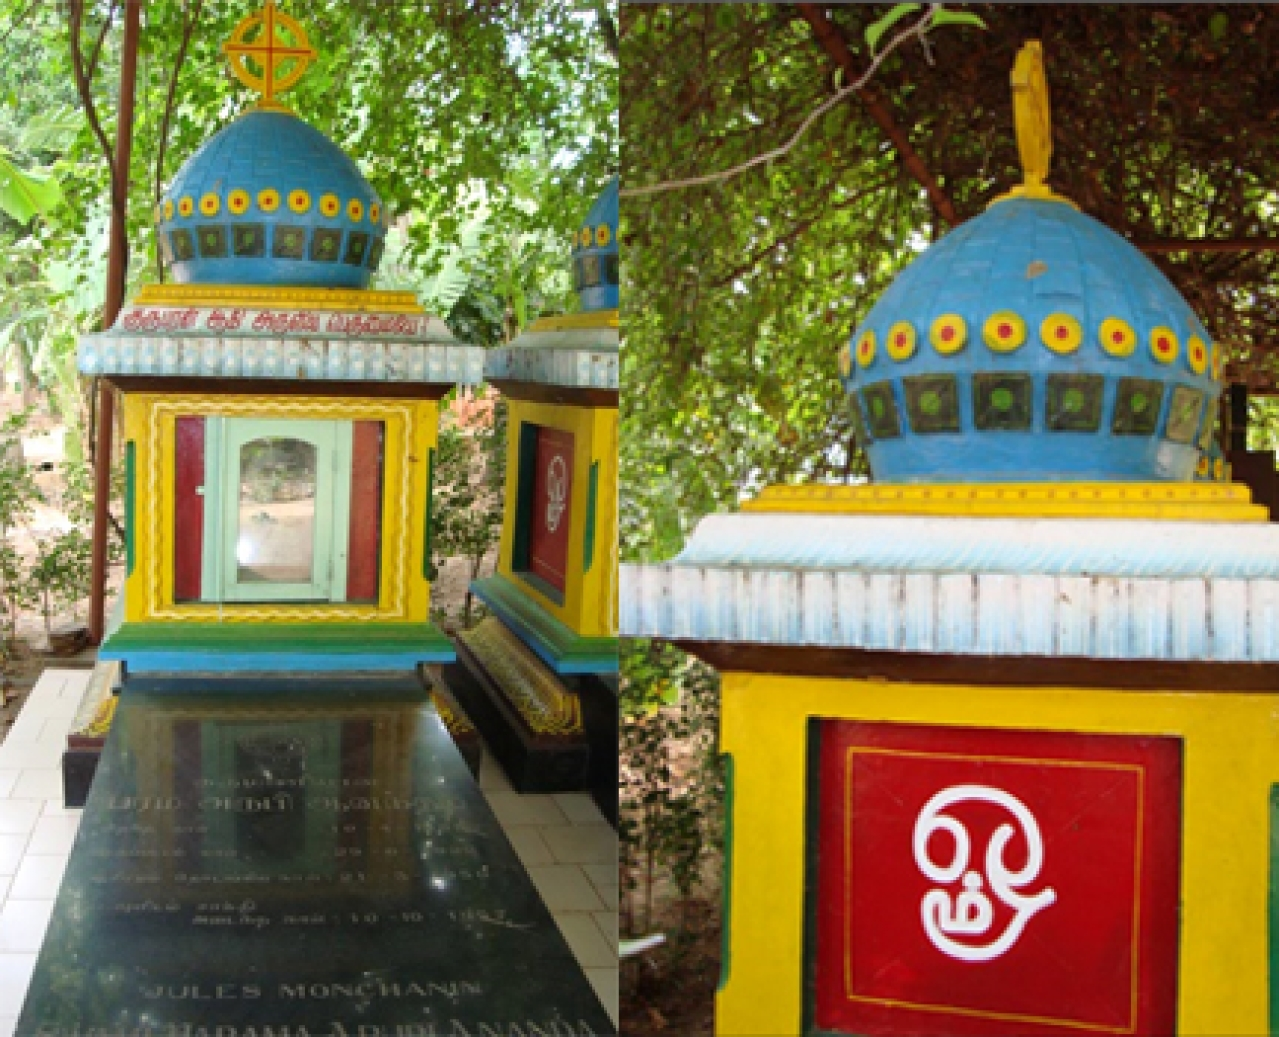 The grave of Monchanin (left); the verse of Manickavasagar is placed in an inappropriate way and Aum is painted to give it a Hindu appearance.